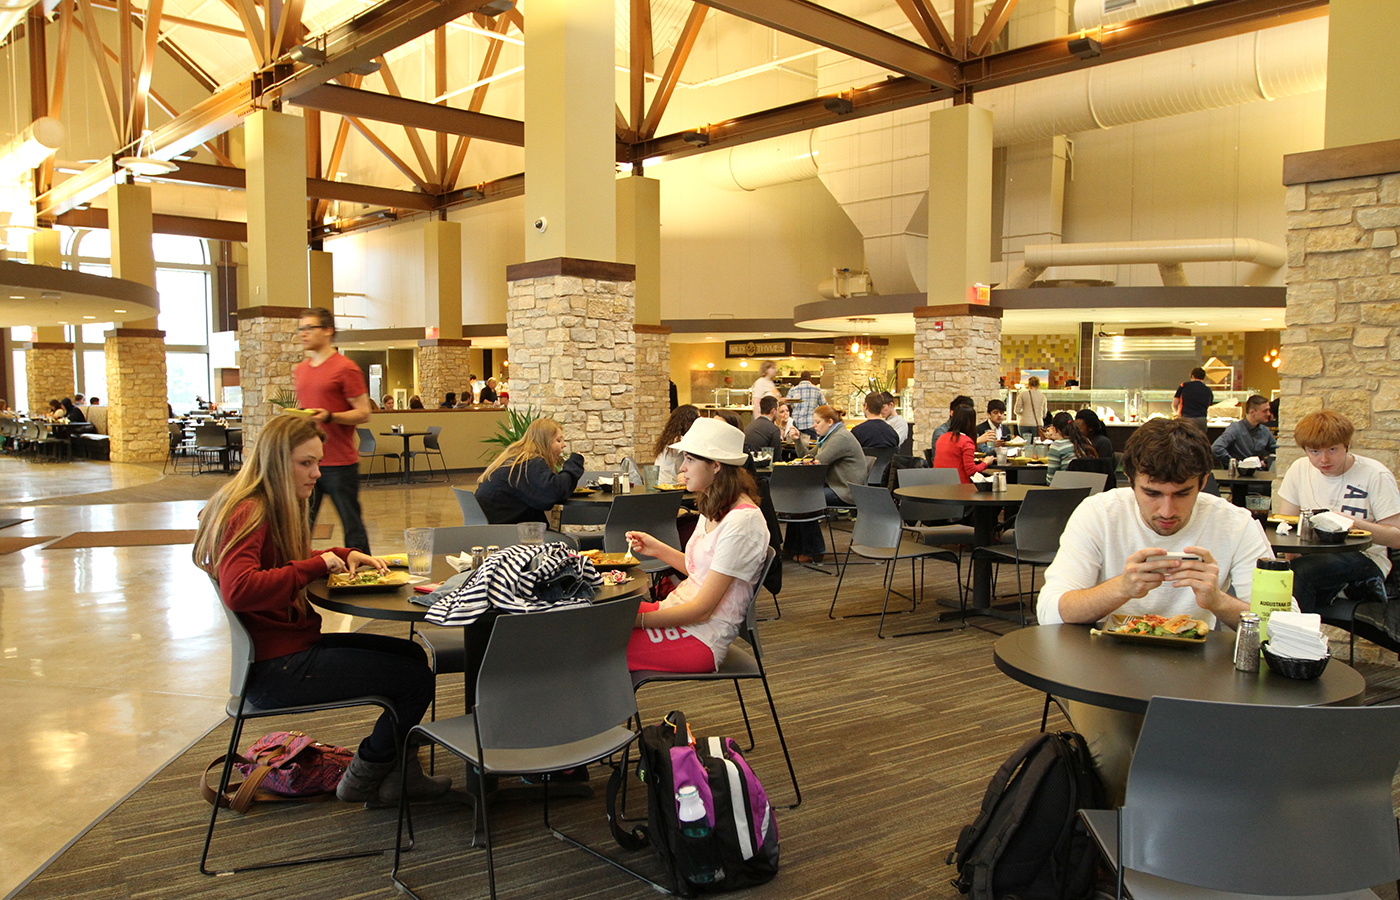 Dining in The Gerber Center